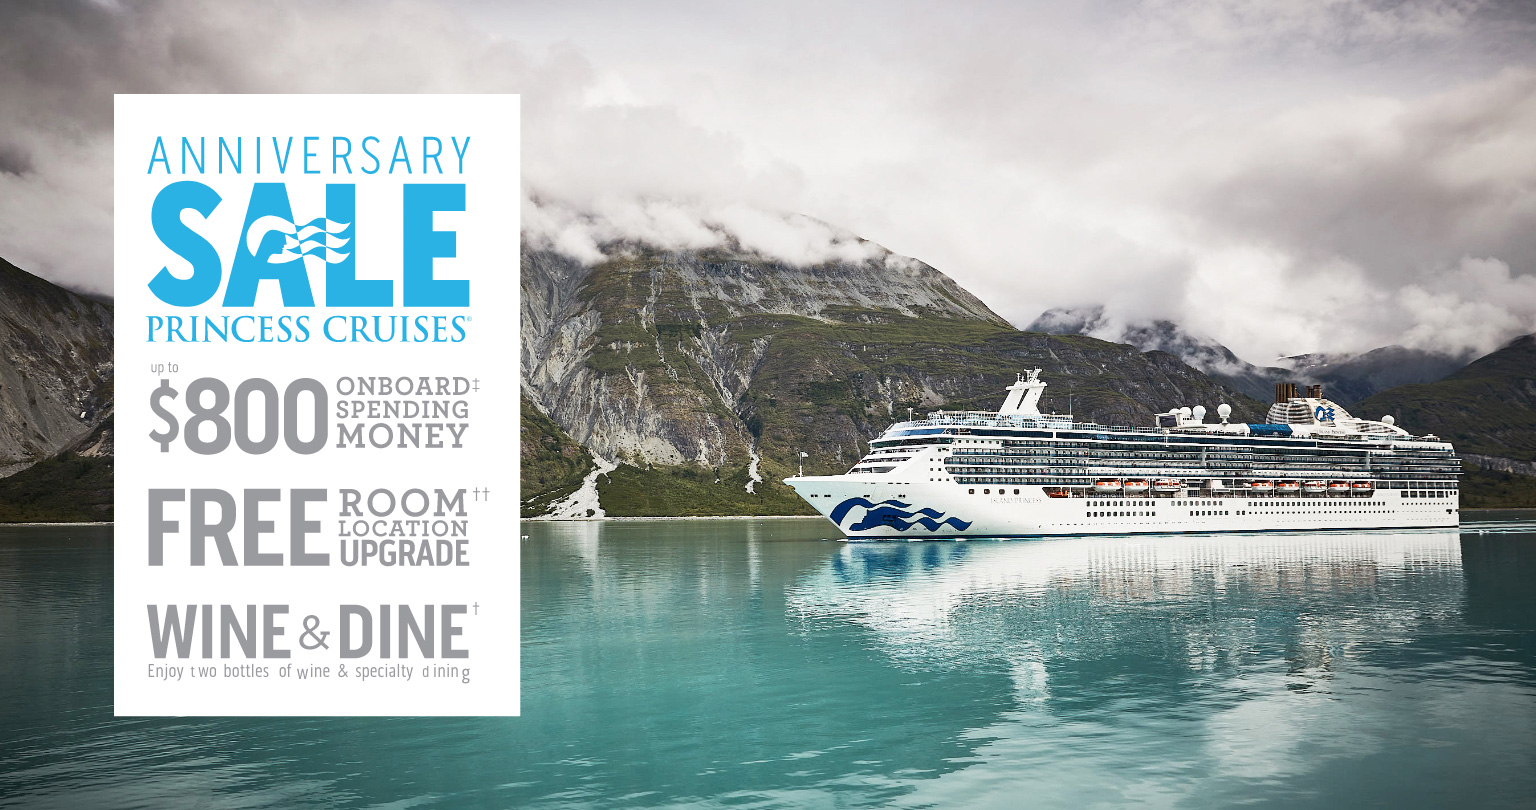 Princess cruise Lines Anniversary Sale!